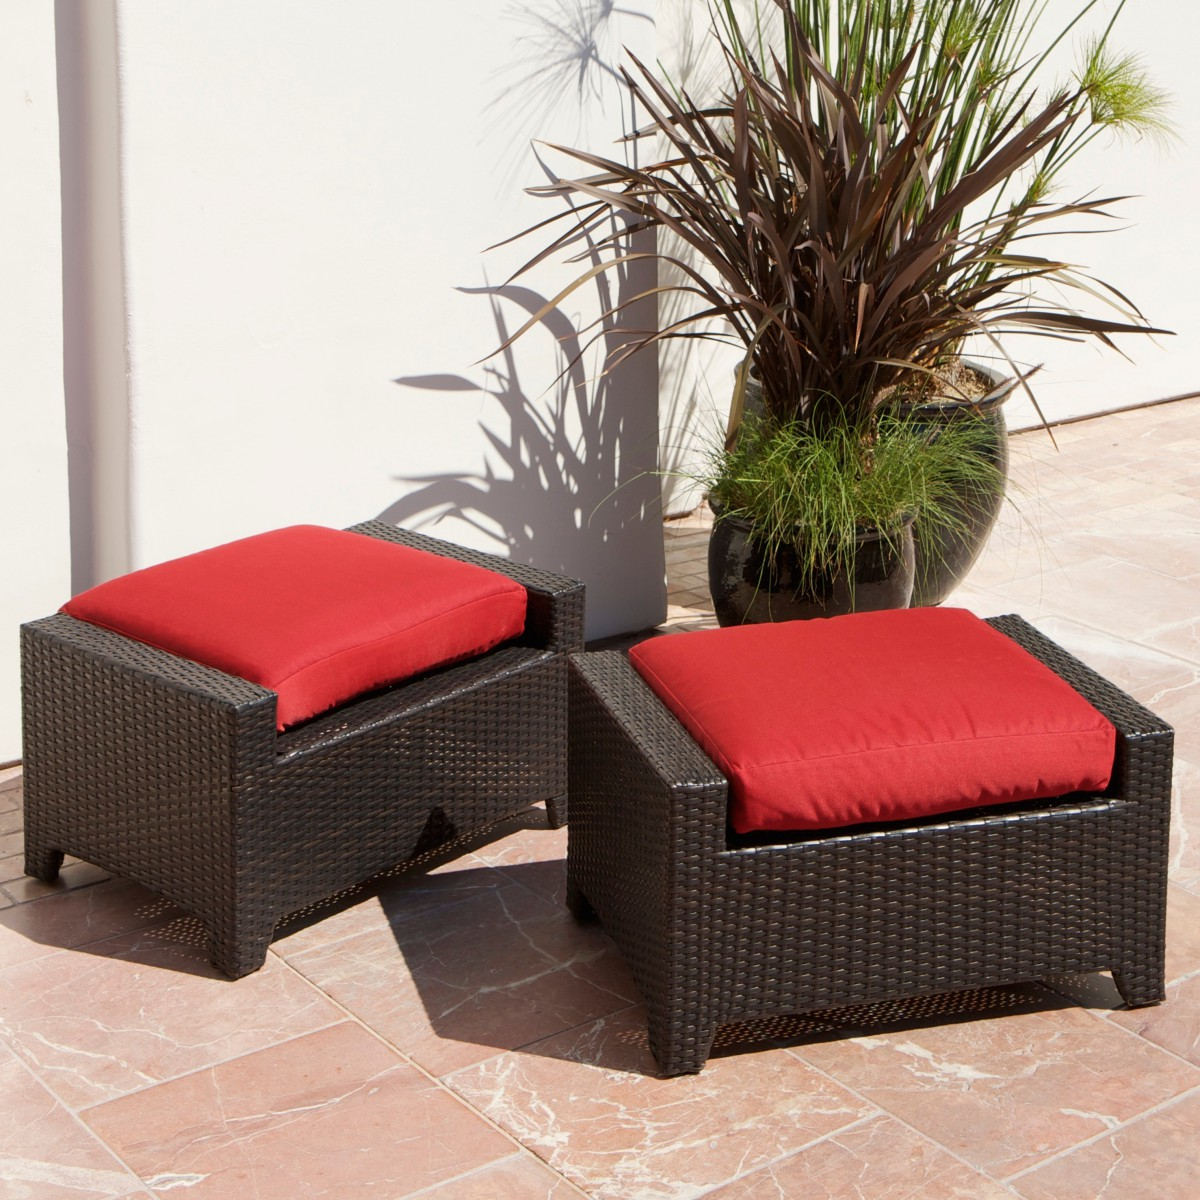 Cantina 7 Piece Sofa Seating Set With Chairs Ottomans